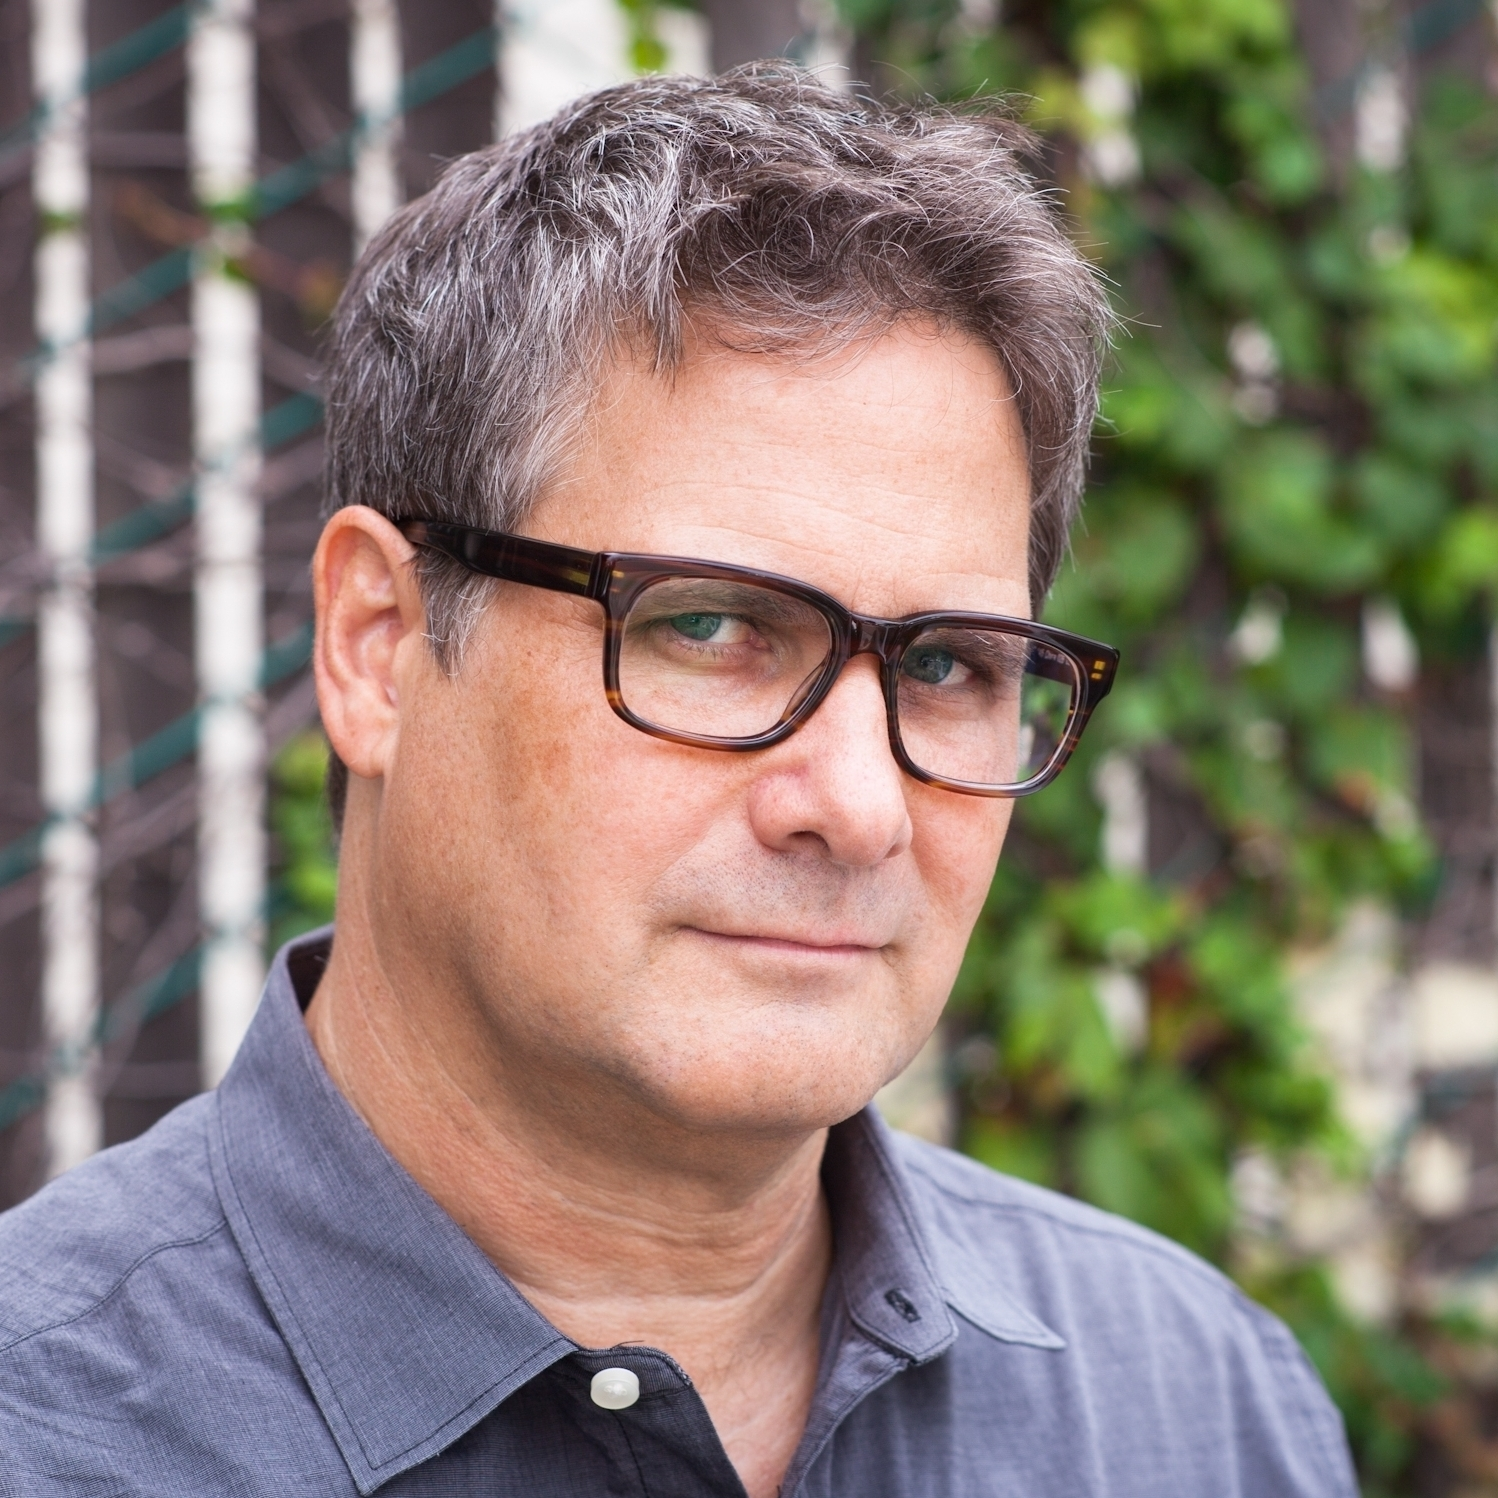 John Glassie teaches at the Pratt Institute and has worked as a contributing editor for the New York Times Magazine.